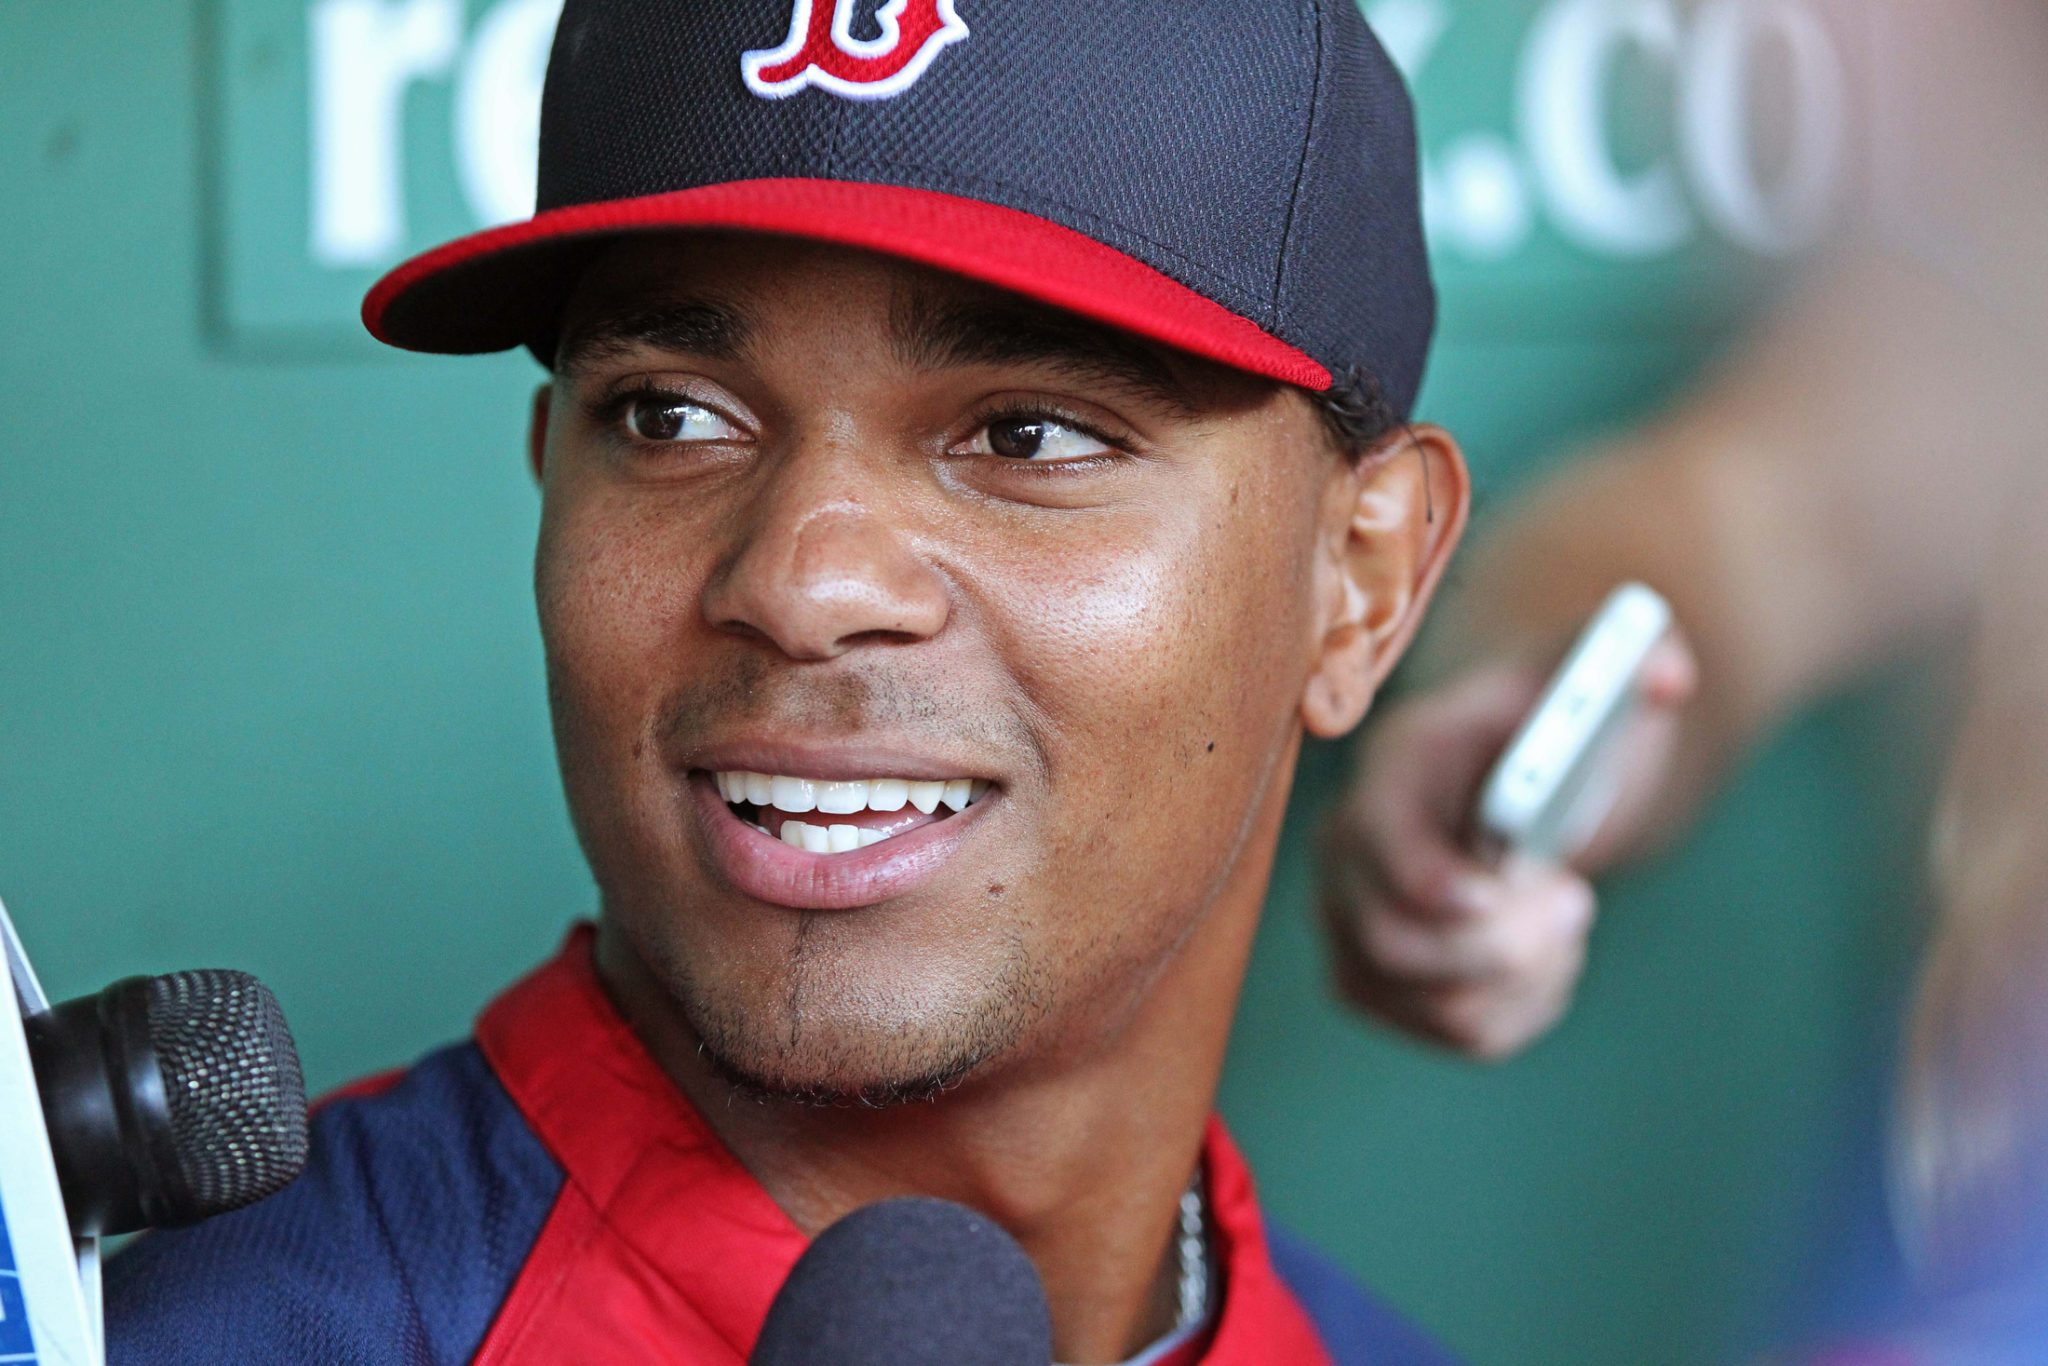 (Boston, MA 08/27/2013) Boston Red Sox shortstop Xander Bogaerts speaks to reporters before a game against the Baltimore Orioles at Fenway Park on Tuesday, August 27, 2013. Staff Photo by Matt West.